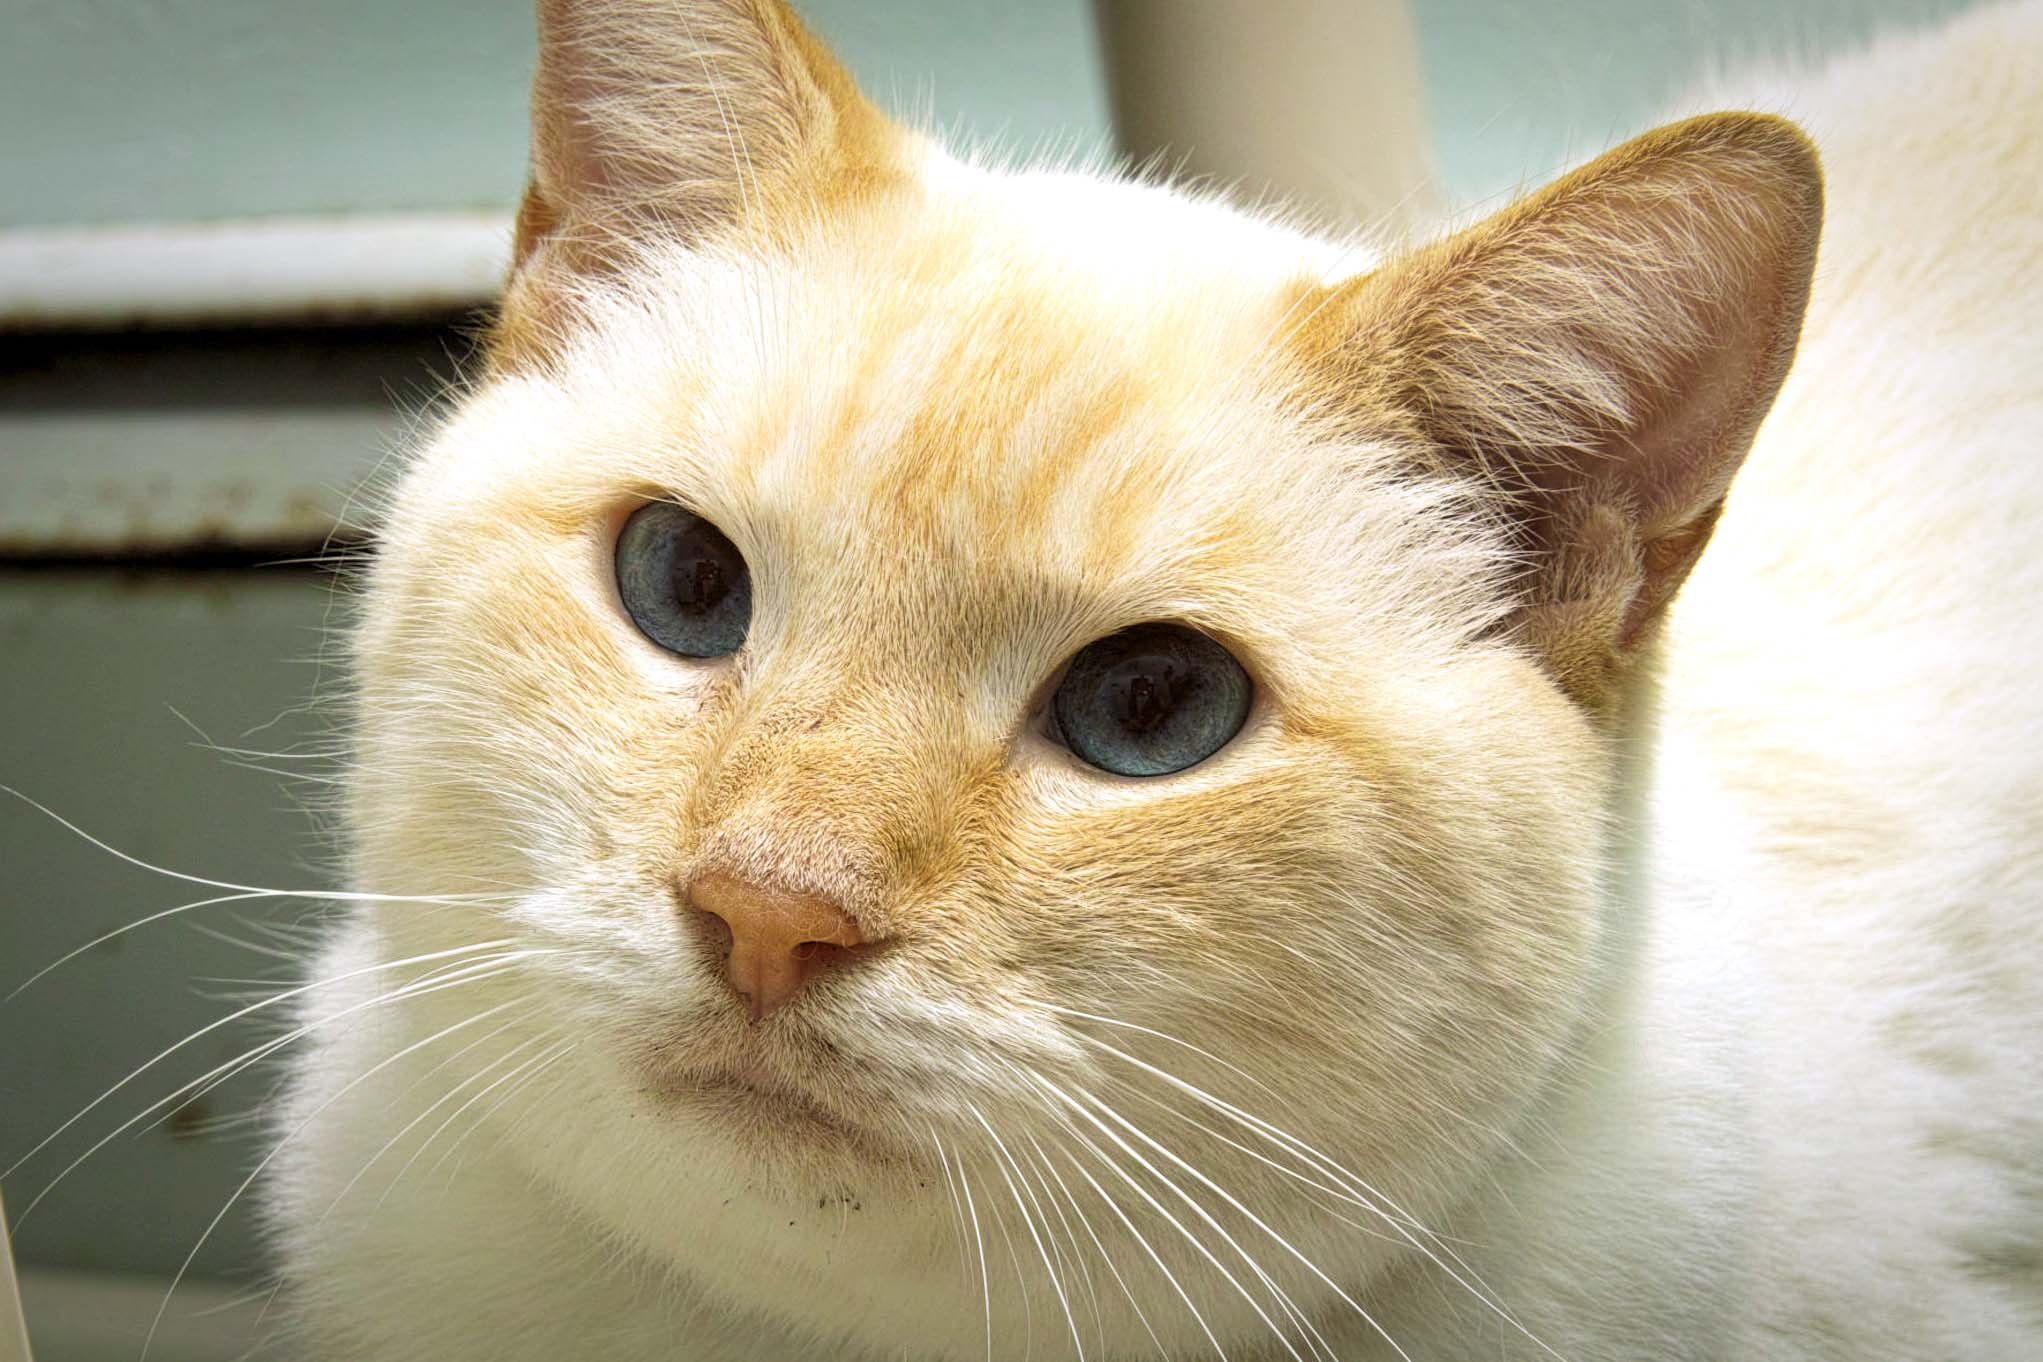 Kitty Kat is 7 years old. He was brought in because his owners were moving and couldn't take him with. He is a spunky cat with a lot of personality!Any household would be lucky to have his company (or so he would have you think).